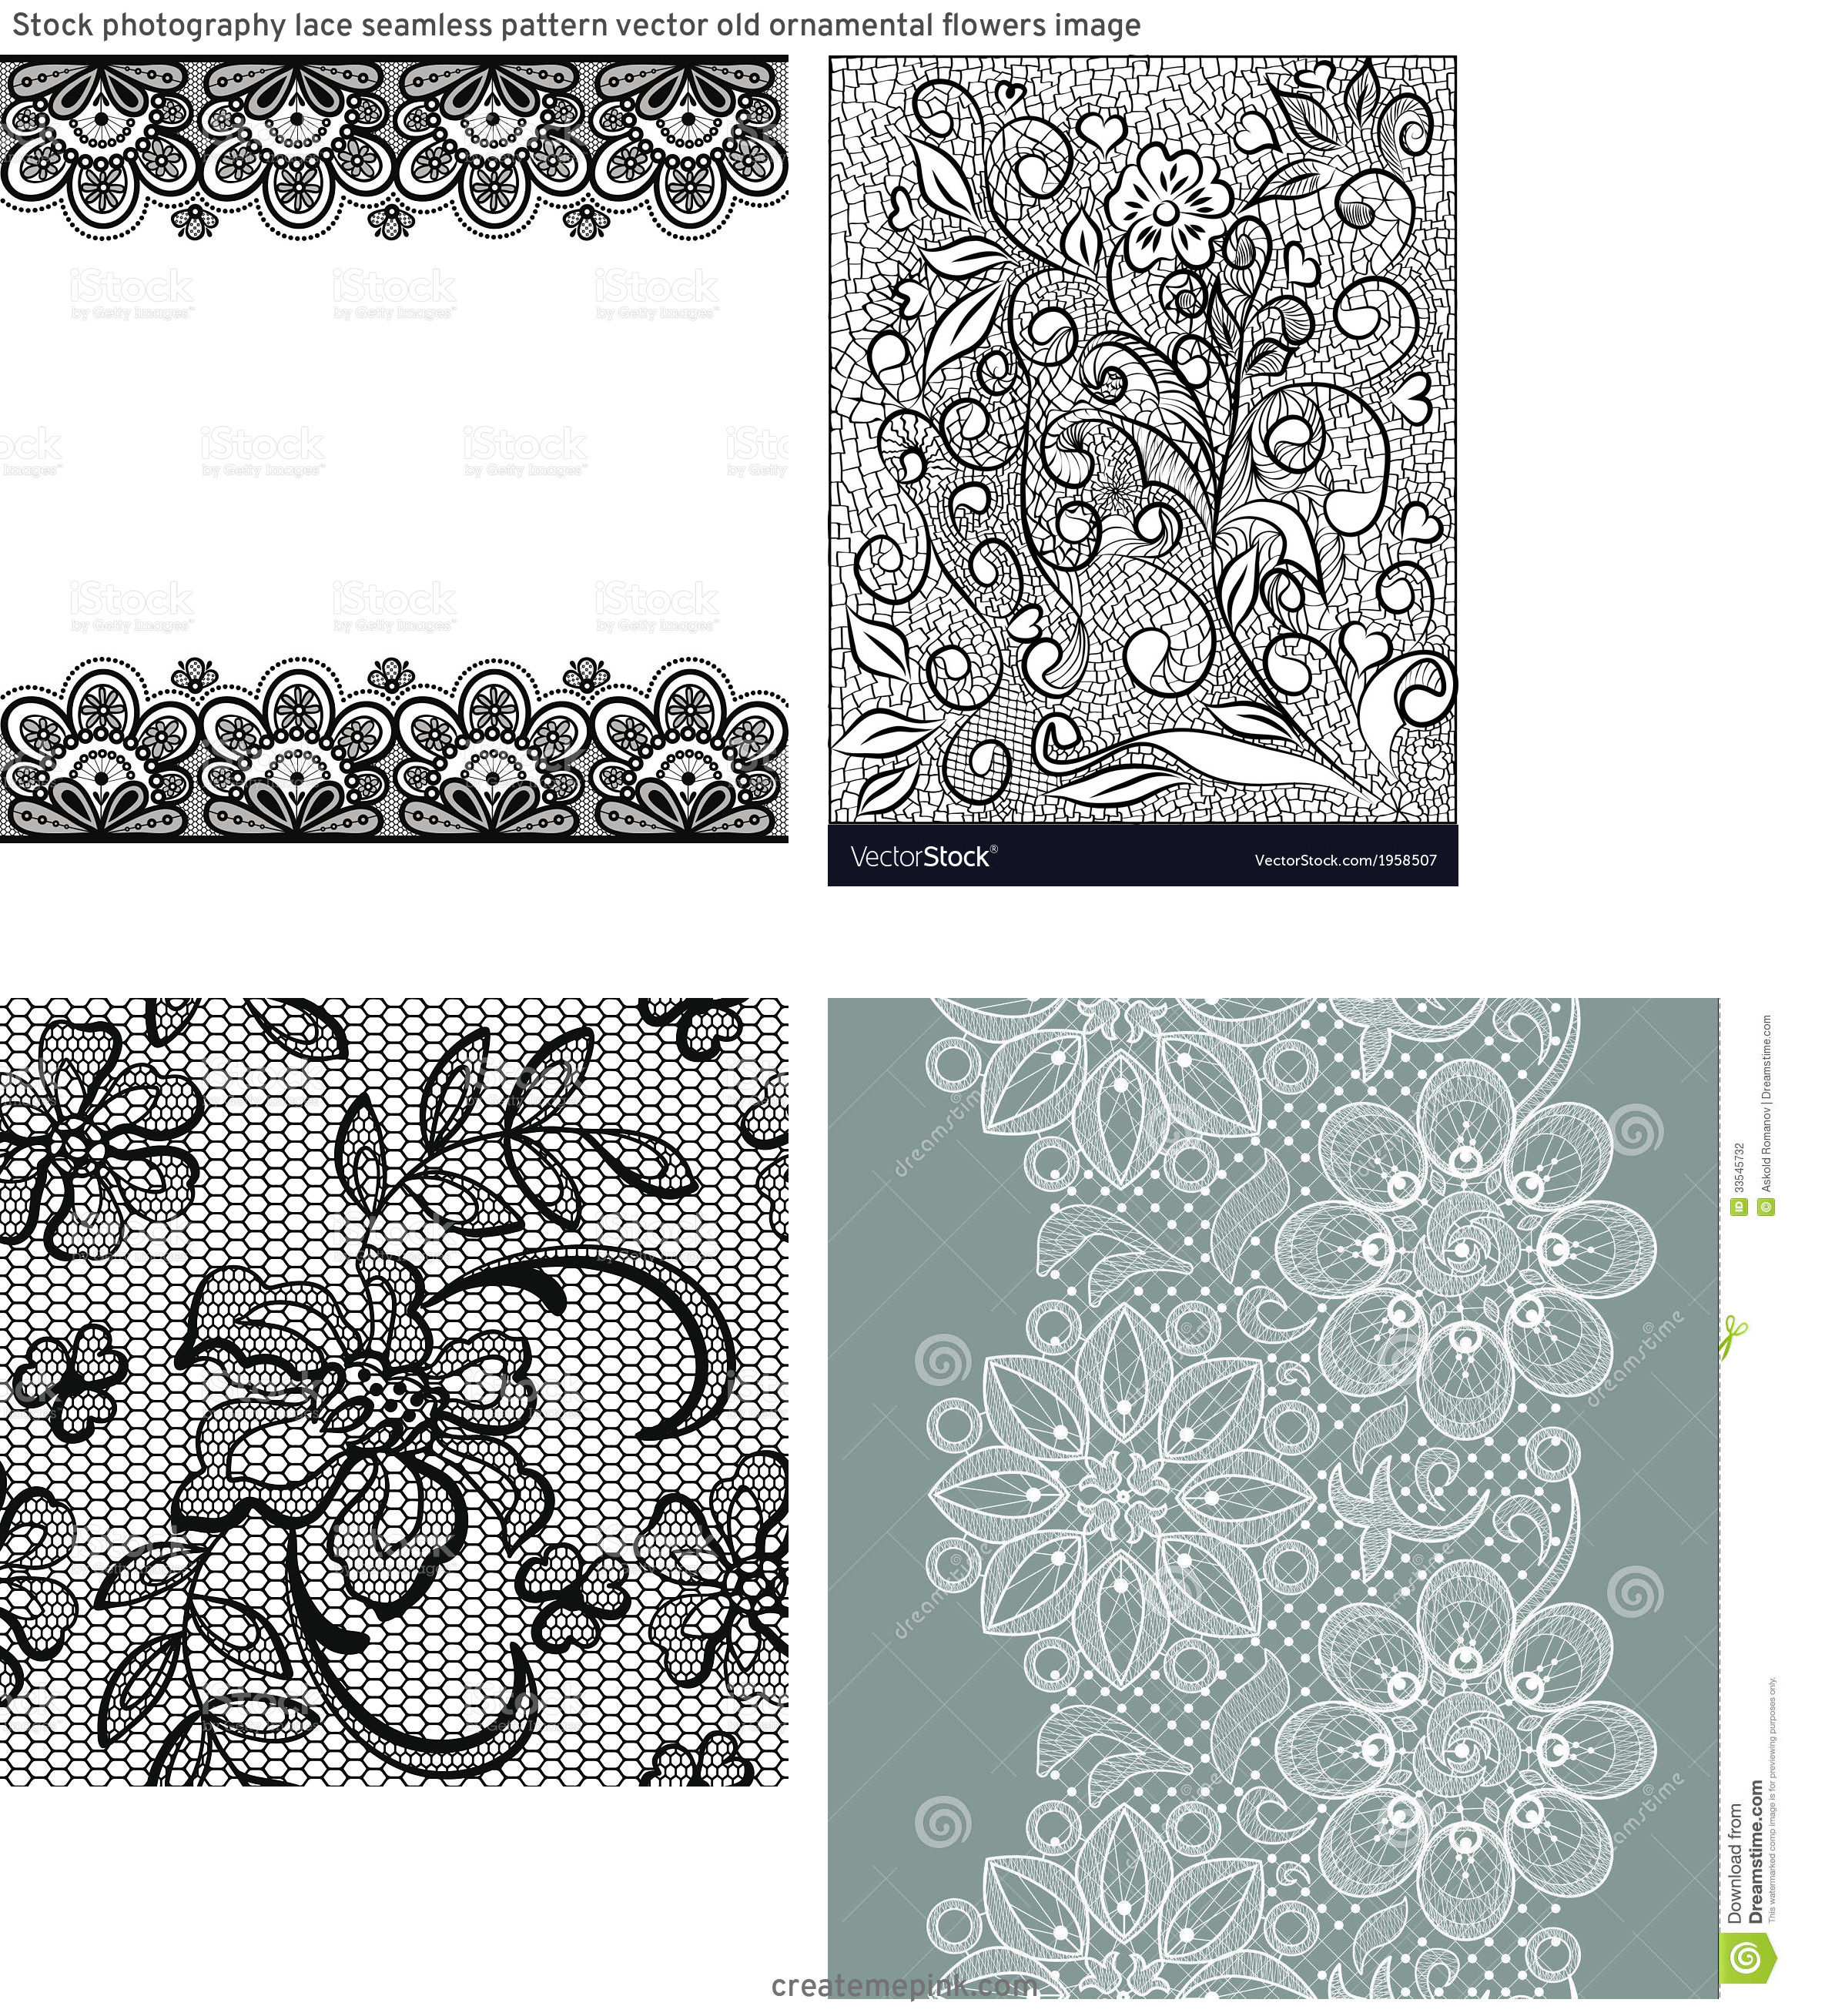 Vector Old Lace Black: Stock Photography Lace Seamless Pattern Vector Old Ornamental Flowers Image